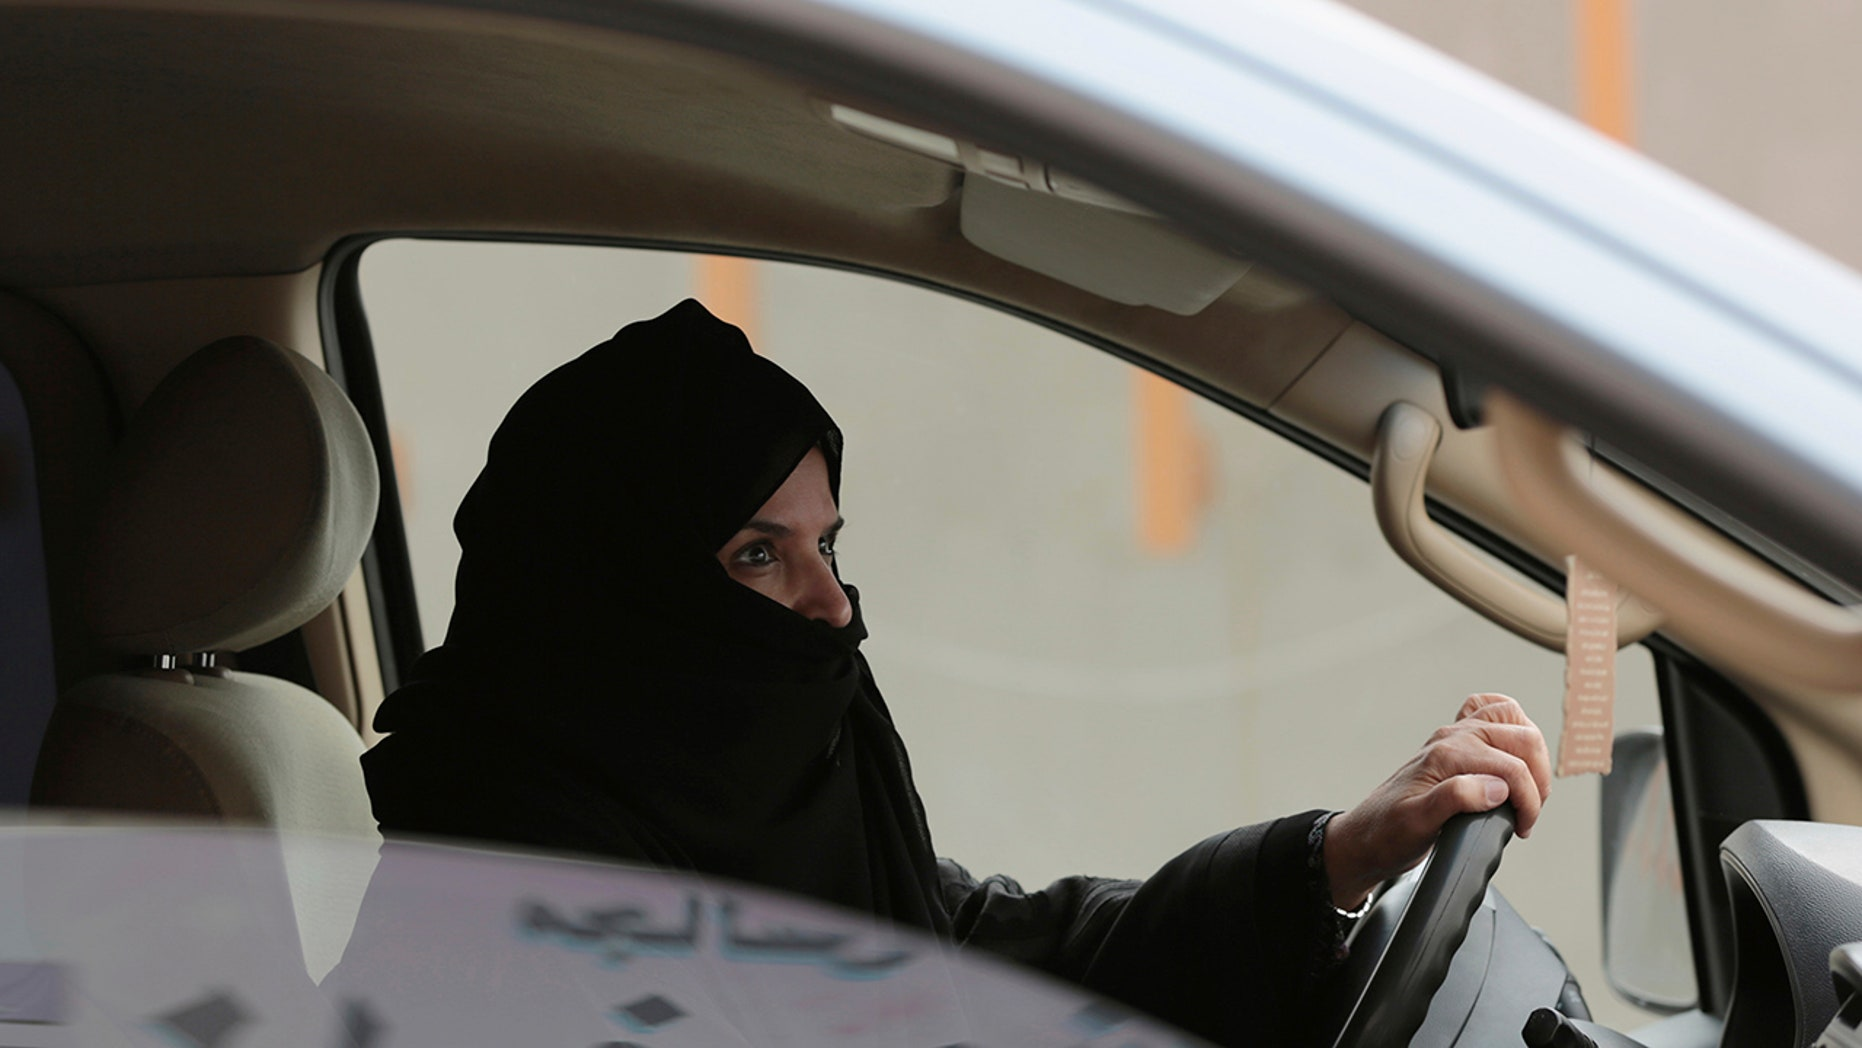 Saudi Arabia detains supporters of women activists, including two US citizens